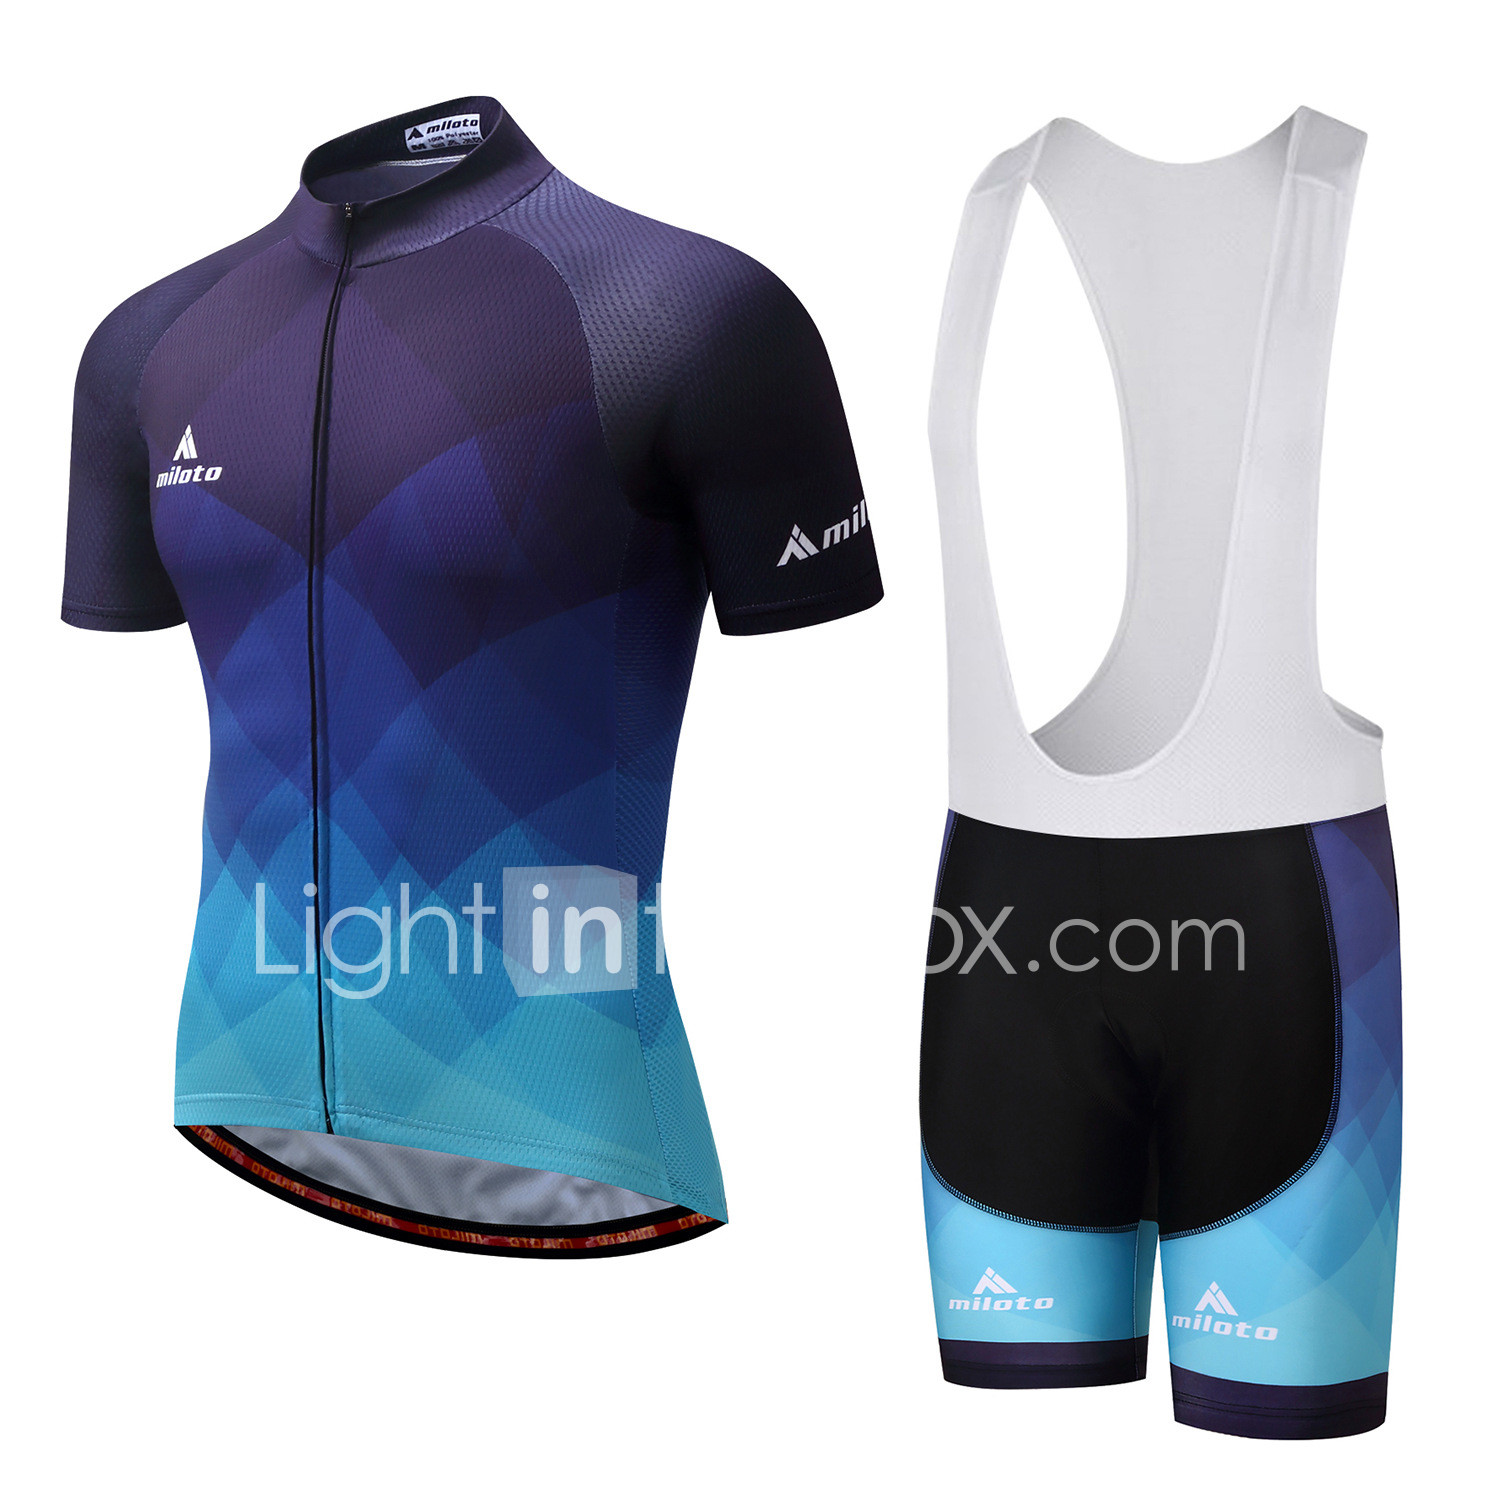 White Color Quick Dry Breathable Men Cycling Jersey And Short Set OR Jersey Only